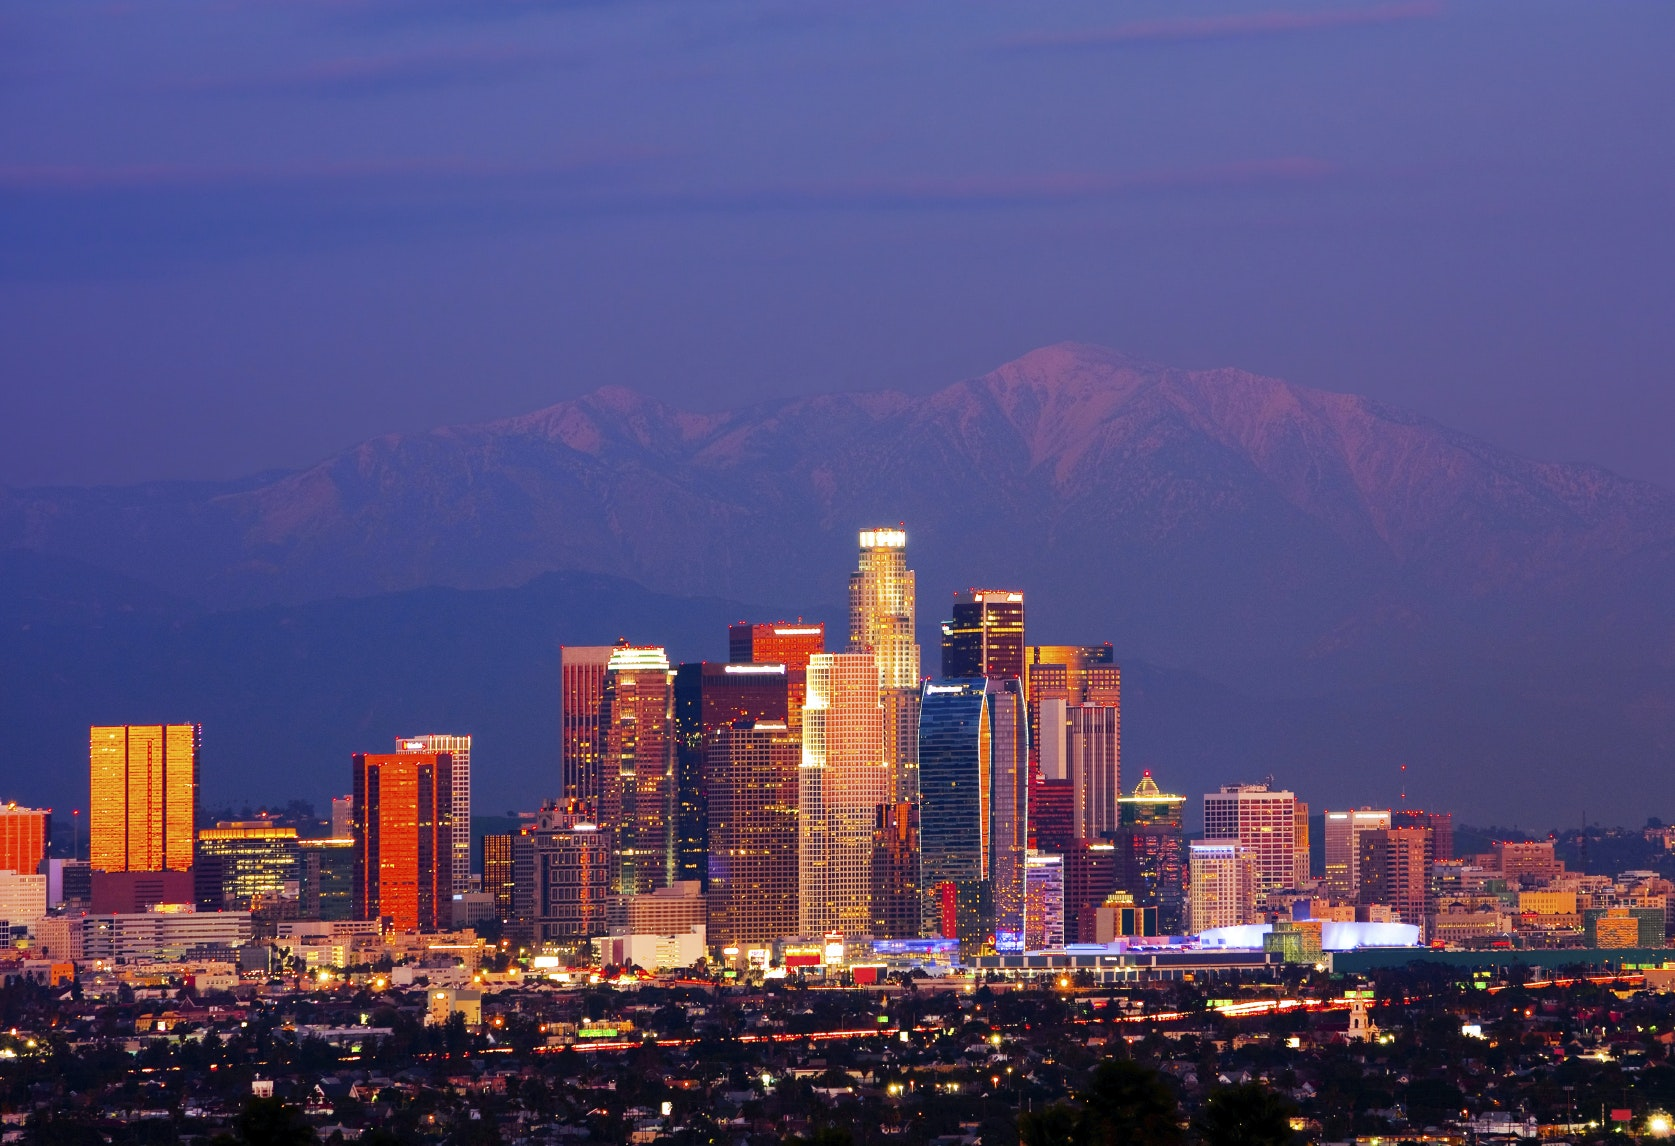 Instamotor Officially Launches in Los Angeles!